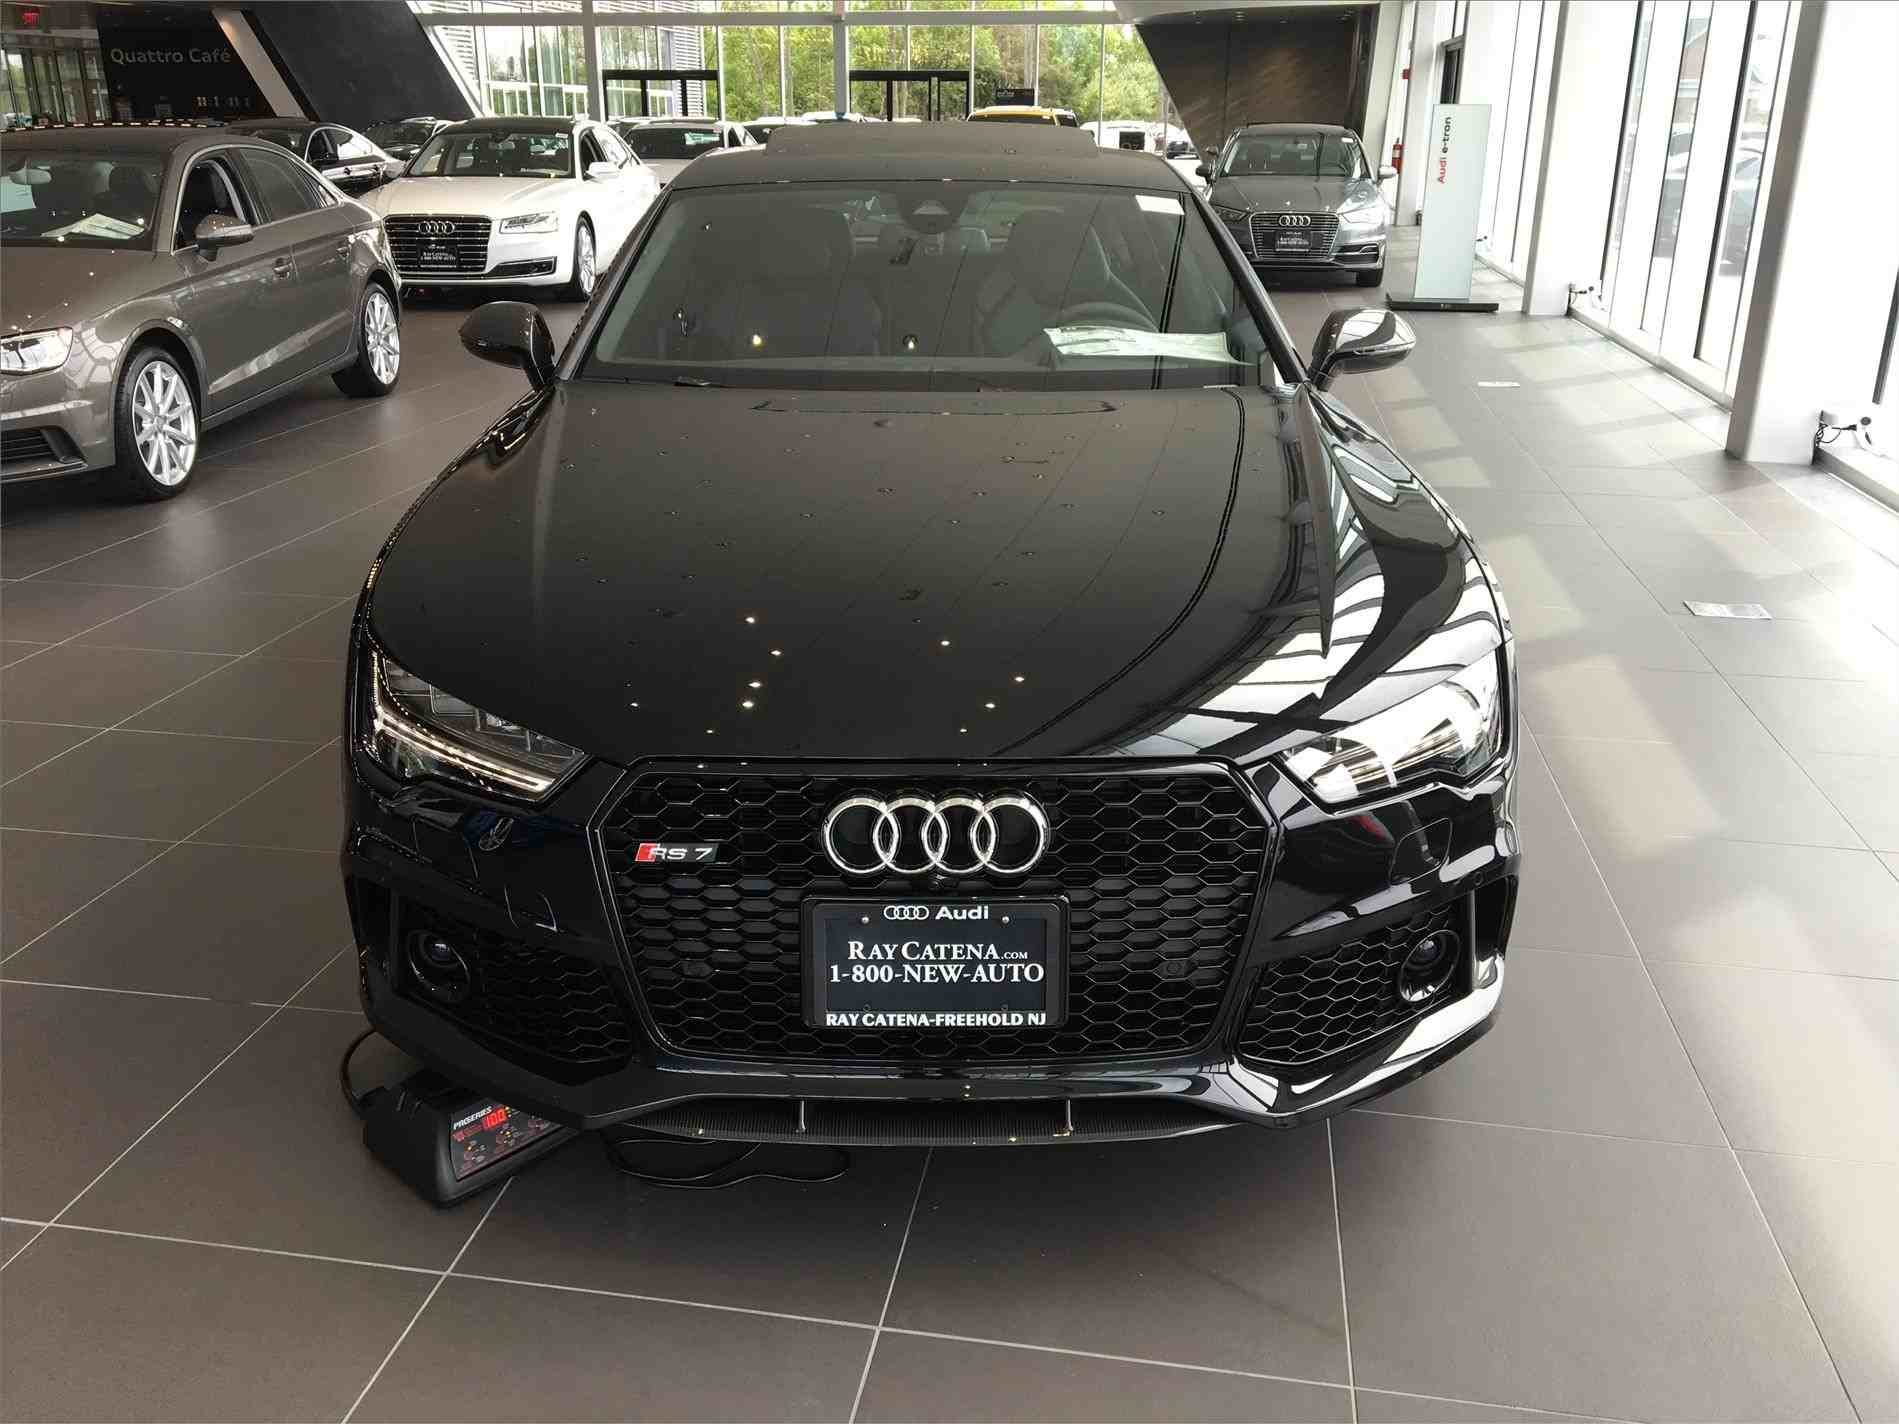 Cheap Cars for Sale Near Me Under 3000 Elegant New Cheap Used Cars for Sale Under 3000 Car Releaserhfarinapiada